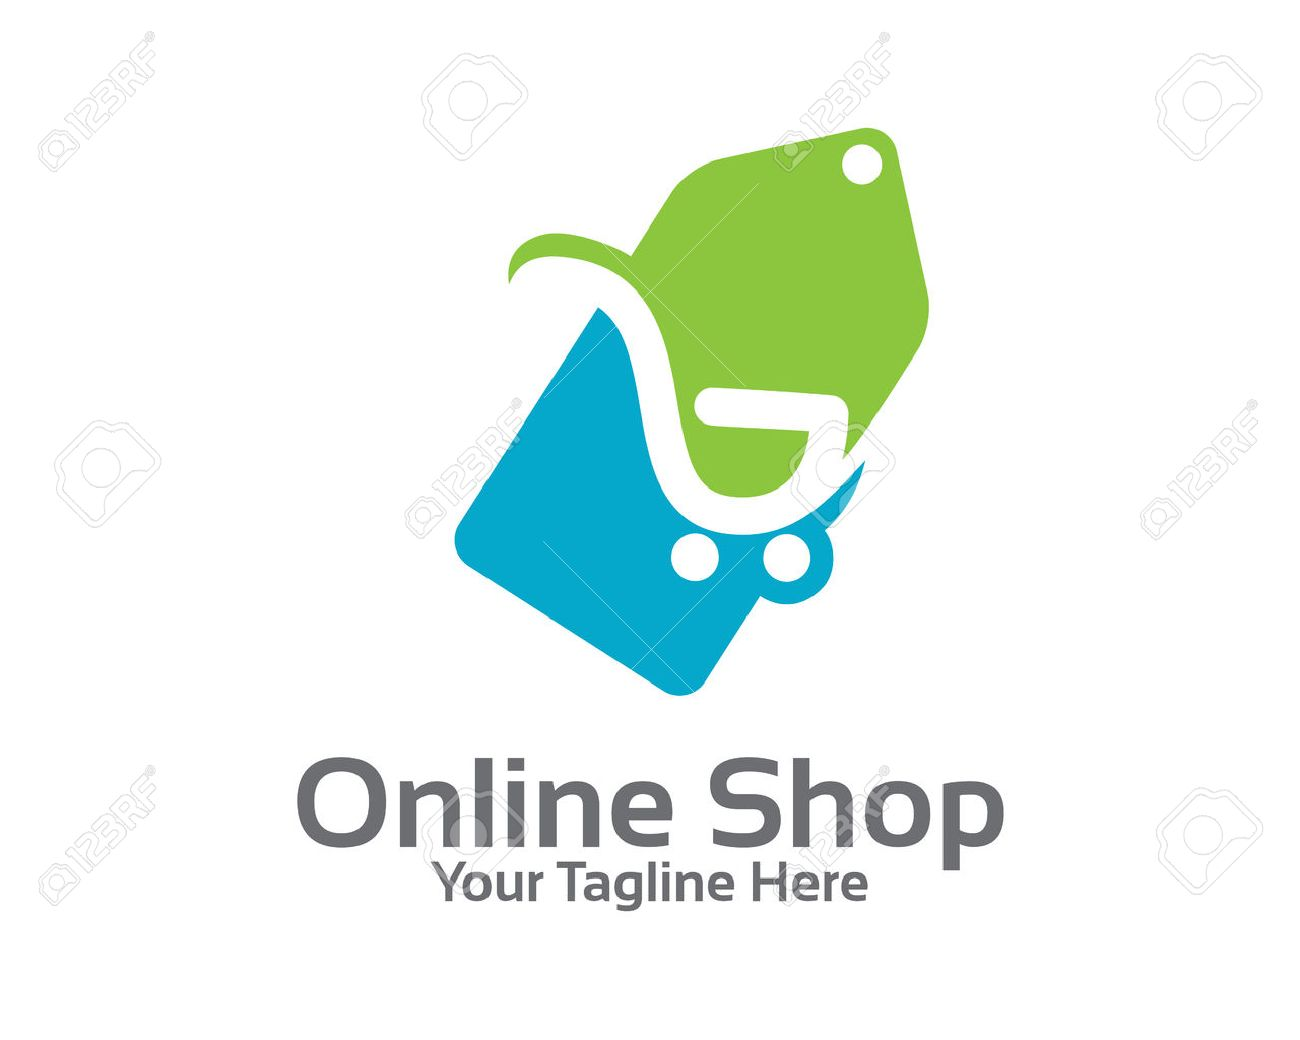 design logo for online online store logo design vector shopping cart and price tag logo design concept price design